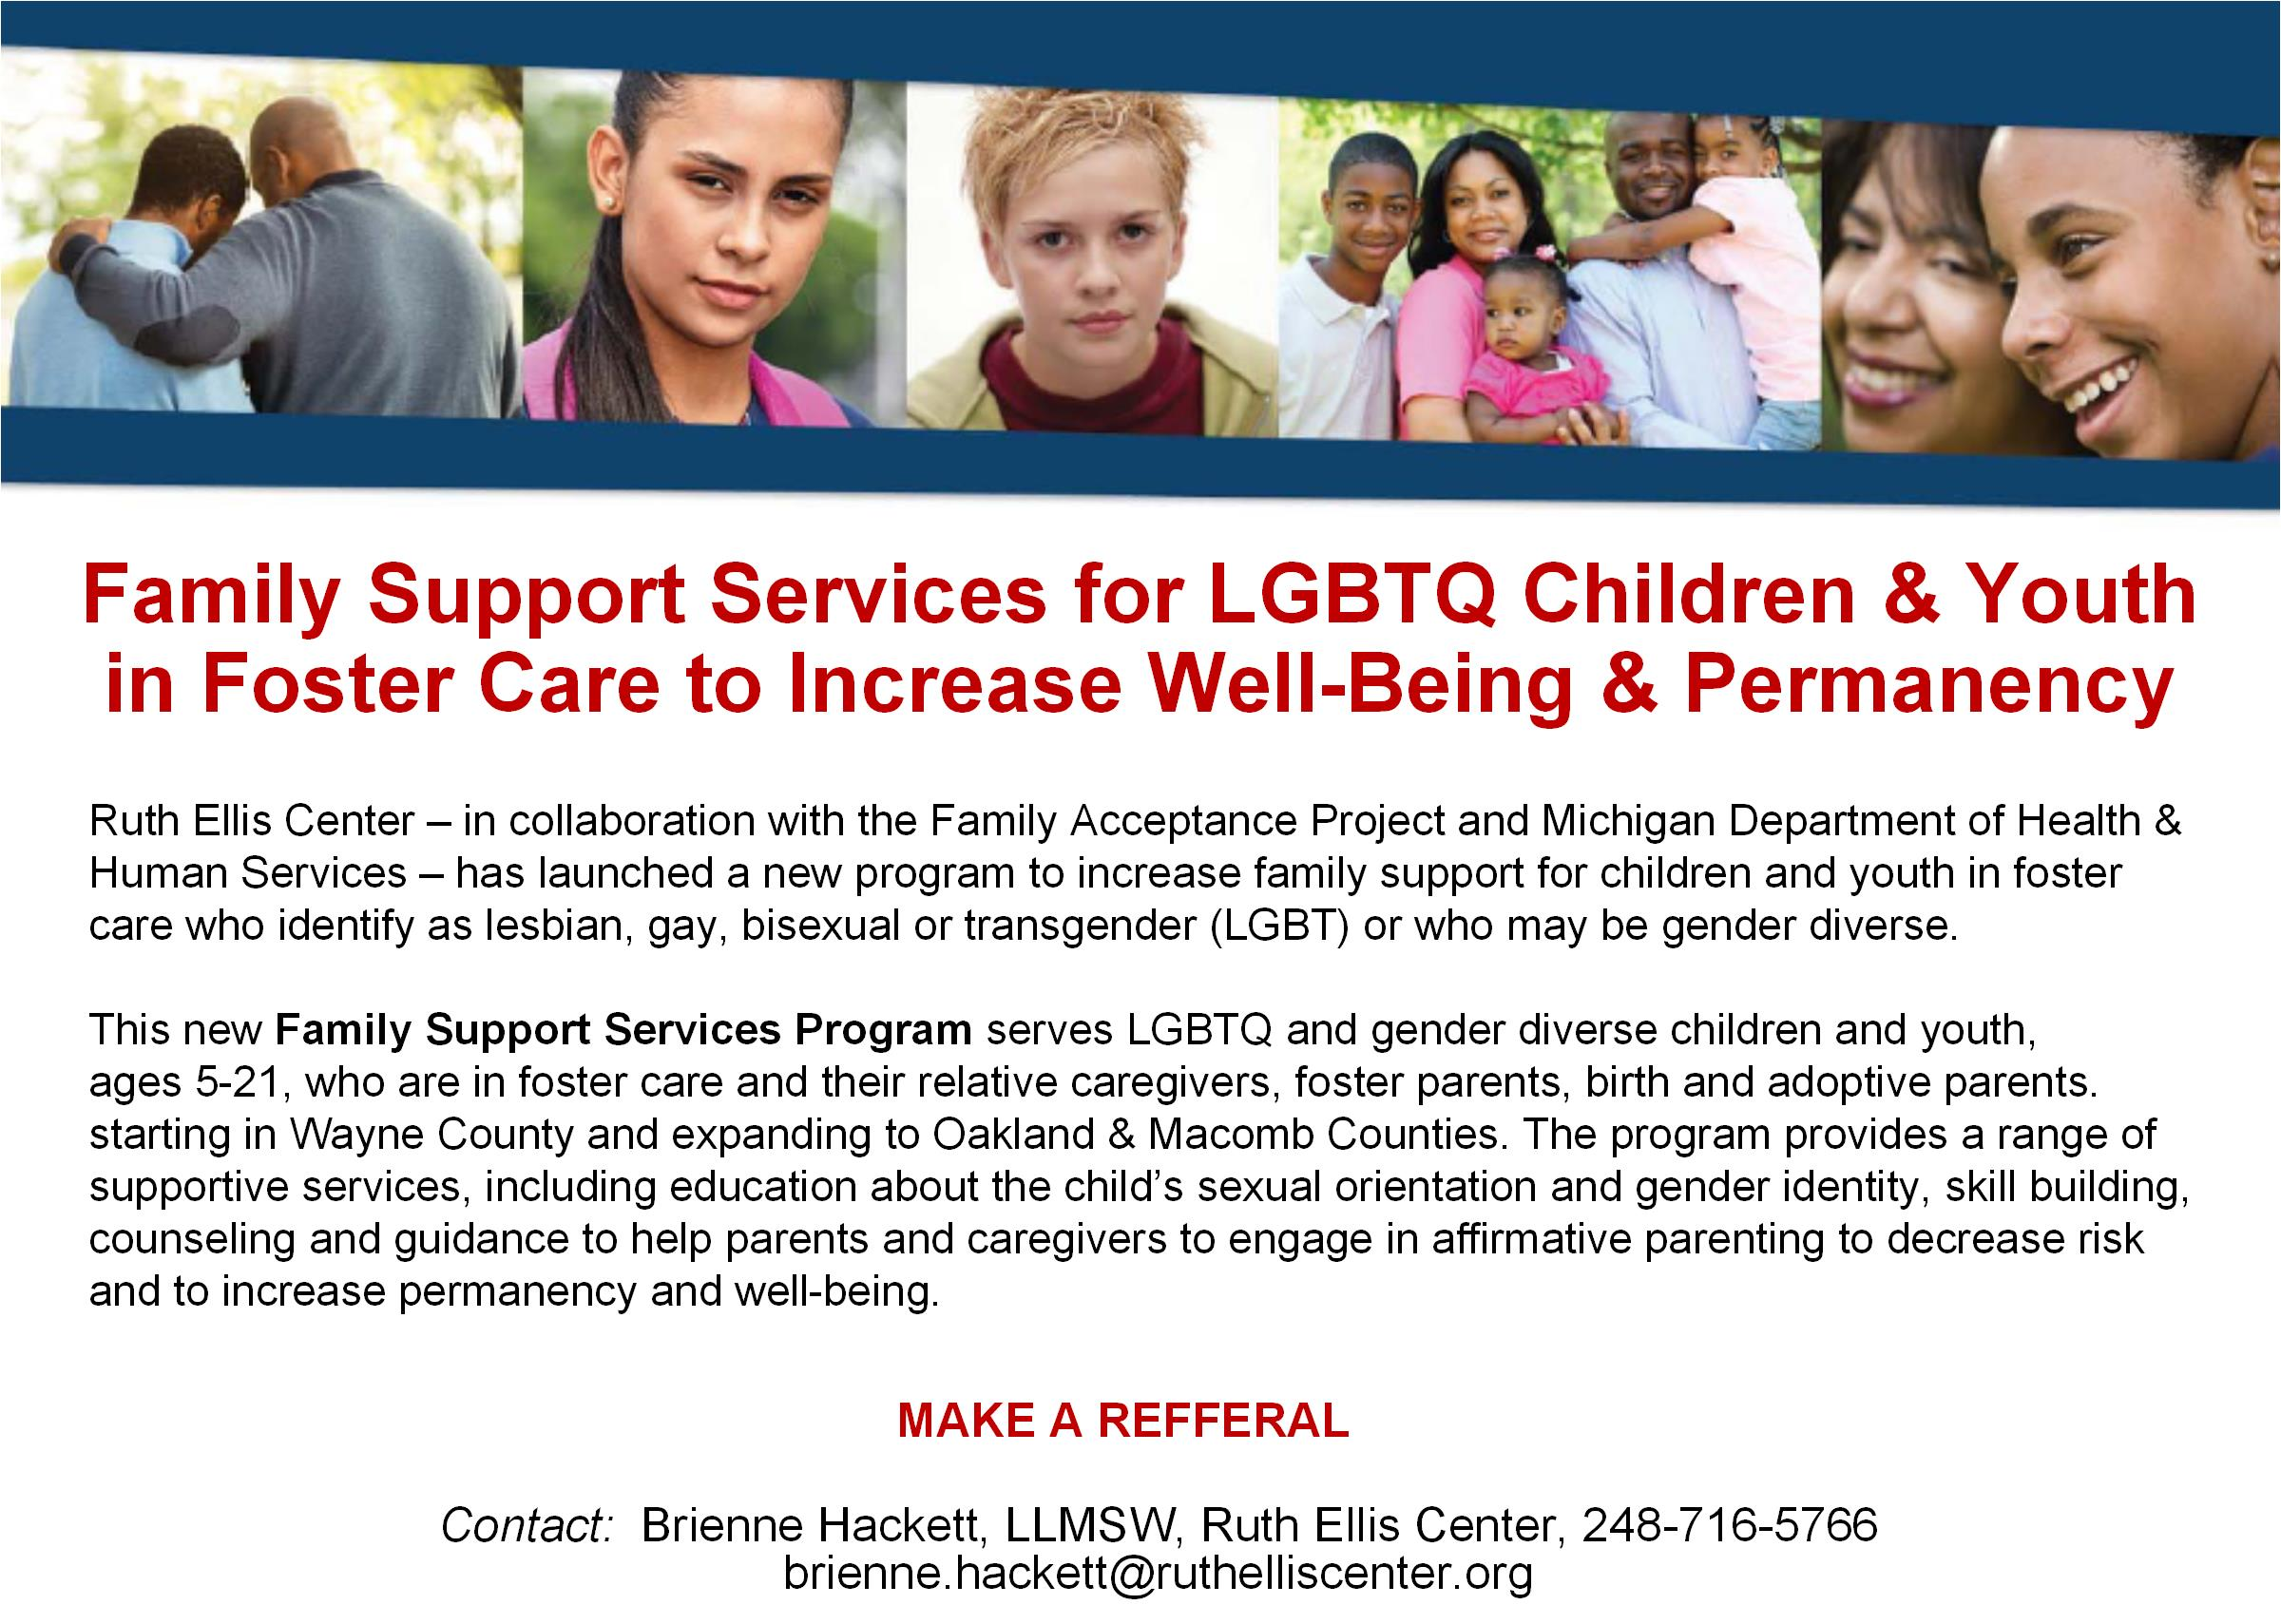 Family Acceptance Project Family-Support ServicesBrochure Foster Care  Michigan